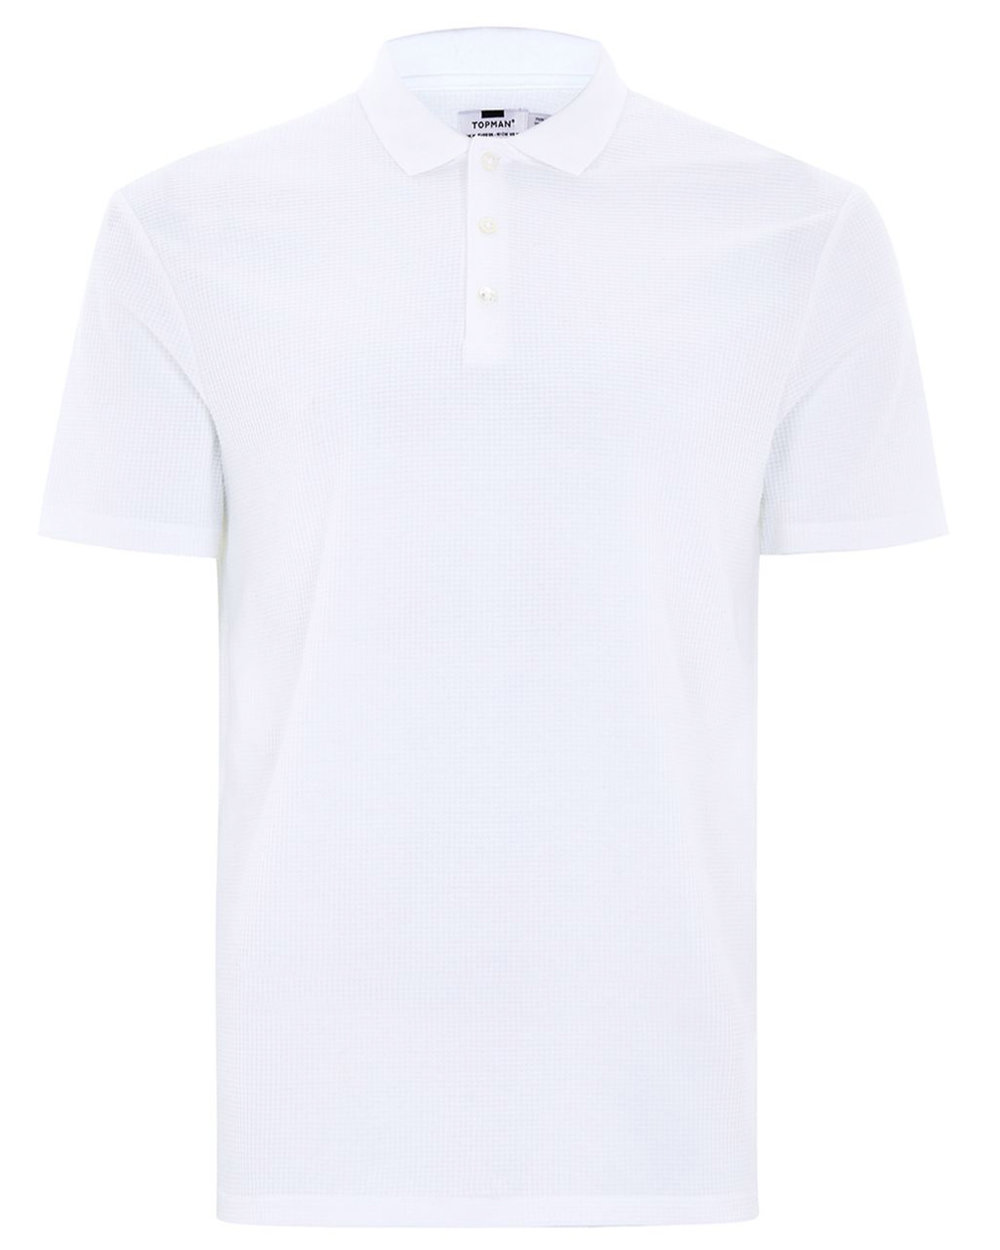 White Slim Fit Waffle Polo - ($35)